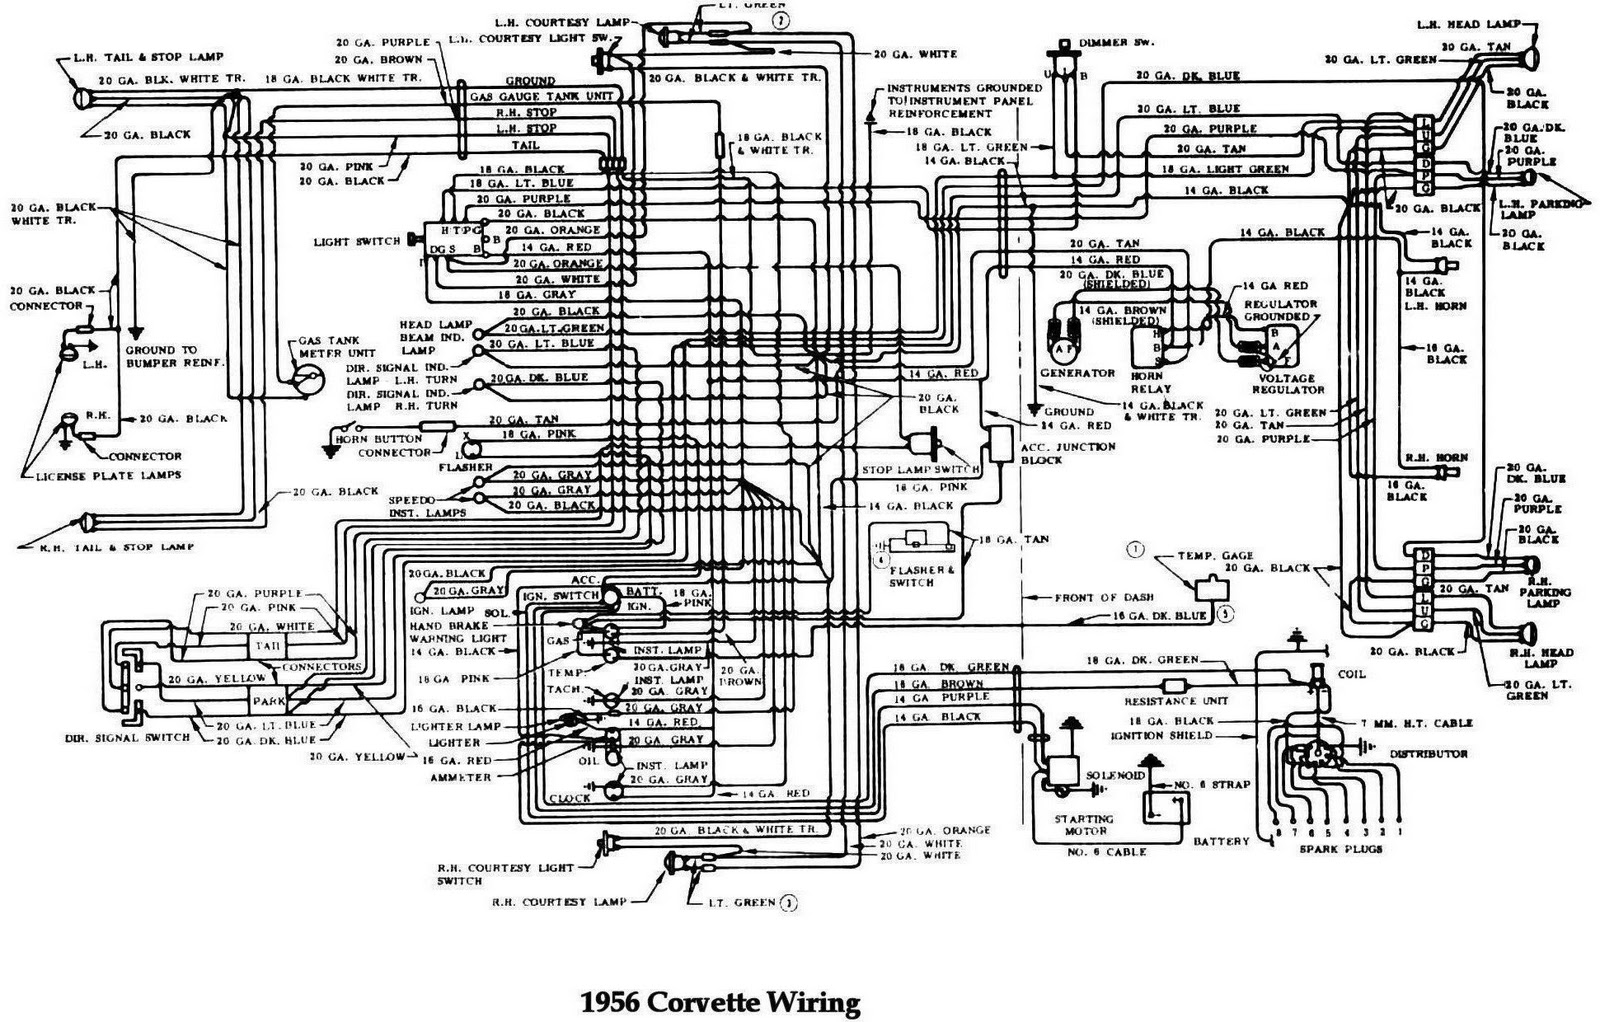 1956 Chevy Color Wiring Diagram